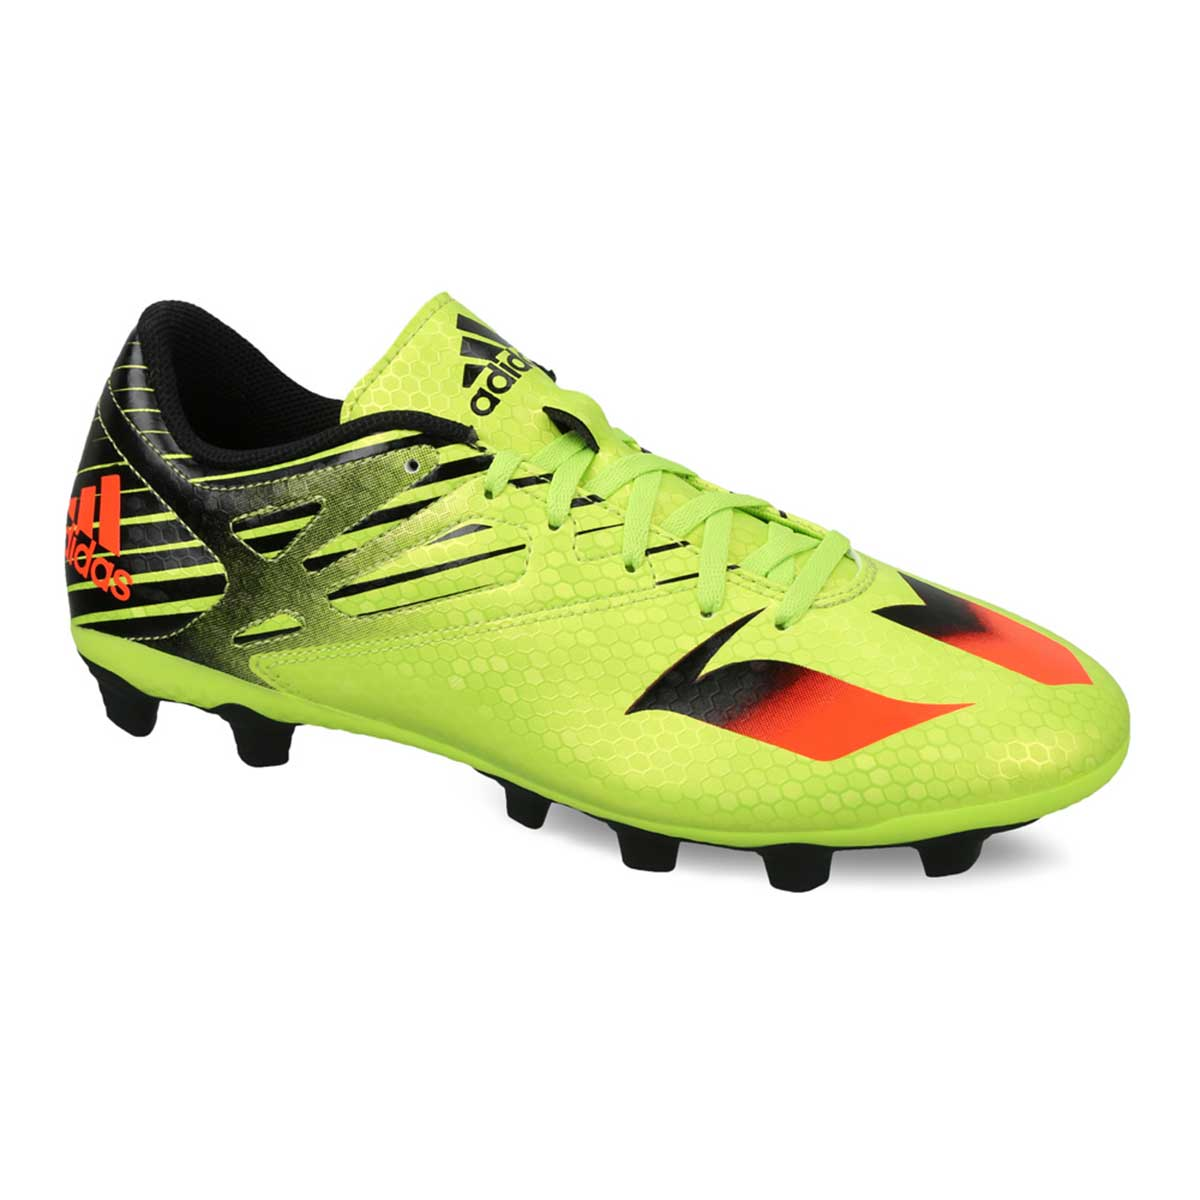 Buy Adidas Messi 15.4 FXG Football Shoes (Green Red Black) Online a5c4c080c260b